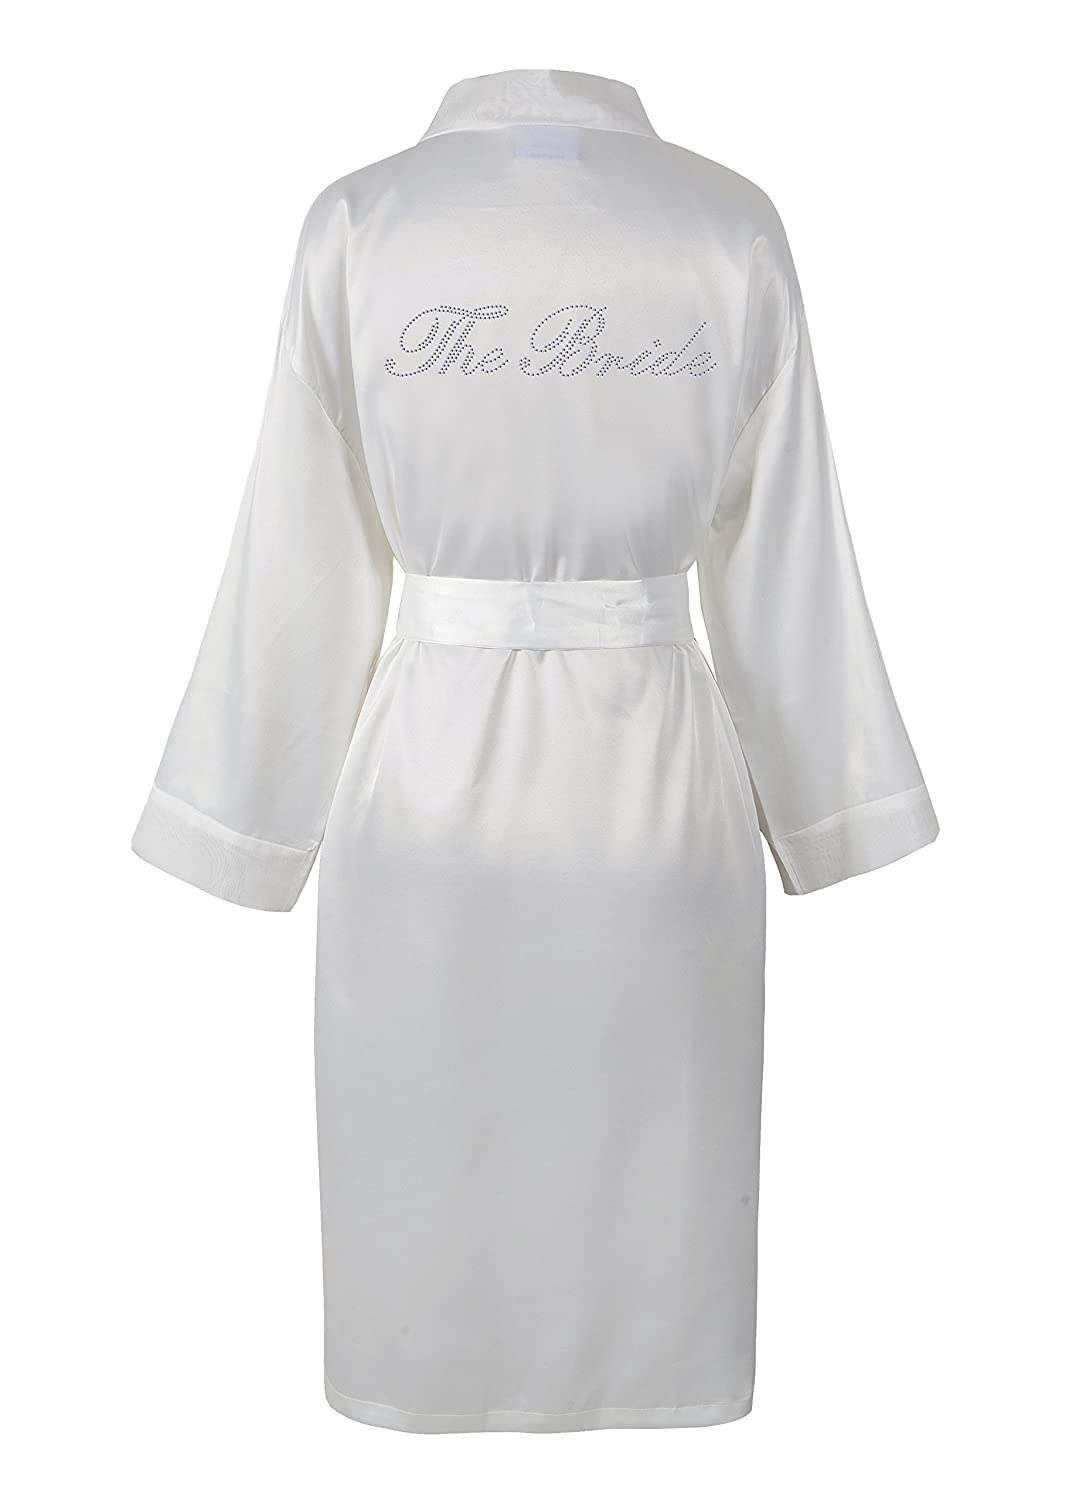 Varsany Women's Rhinestone Satin The Bride Bathrobe VARBathrobe1027